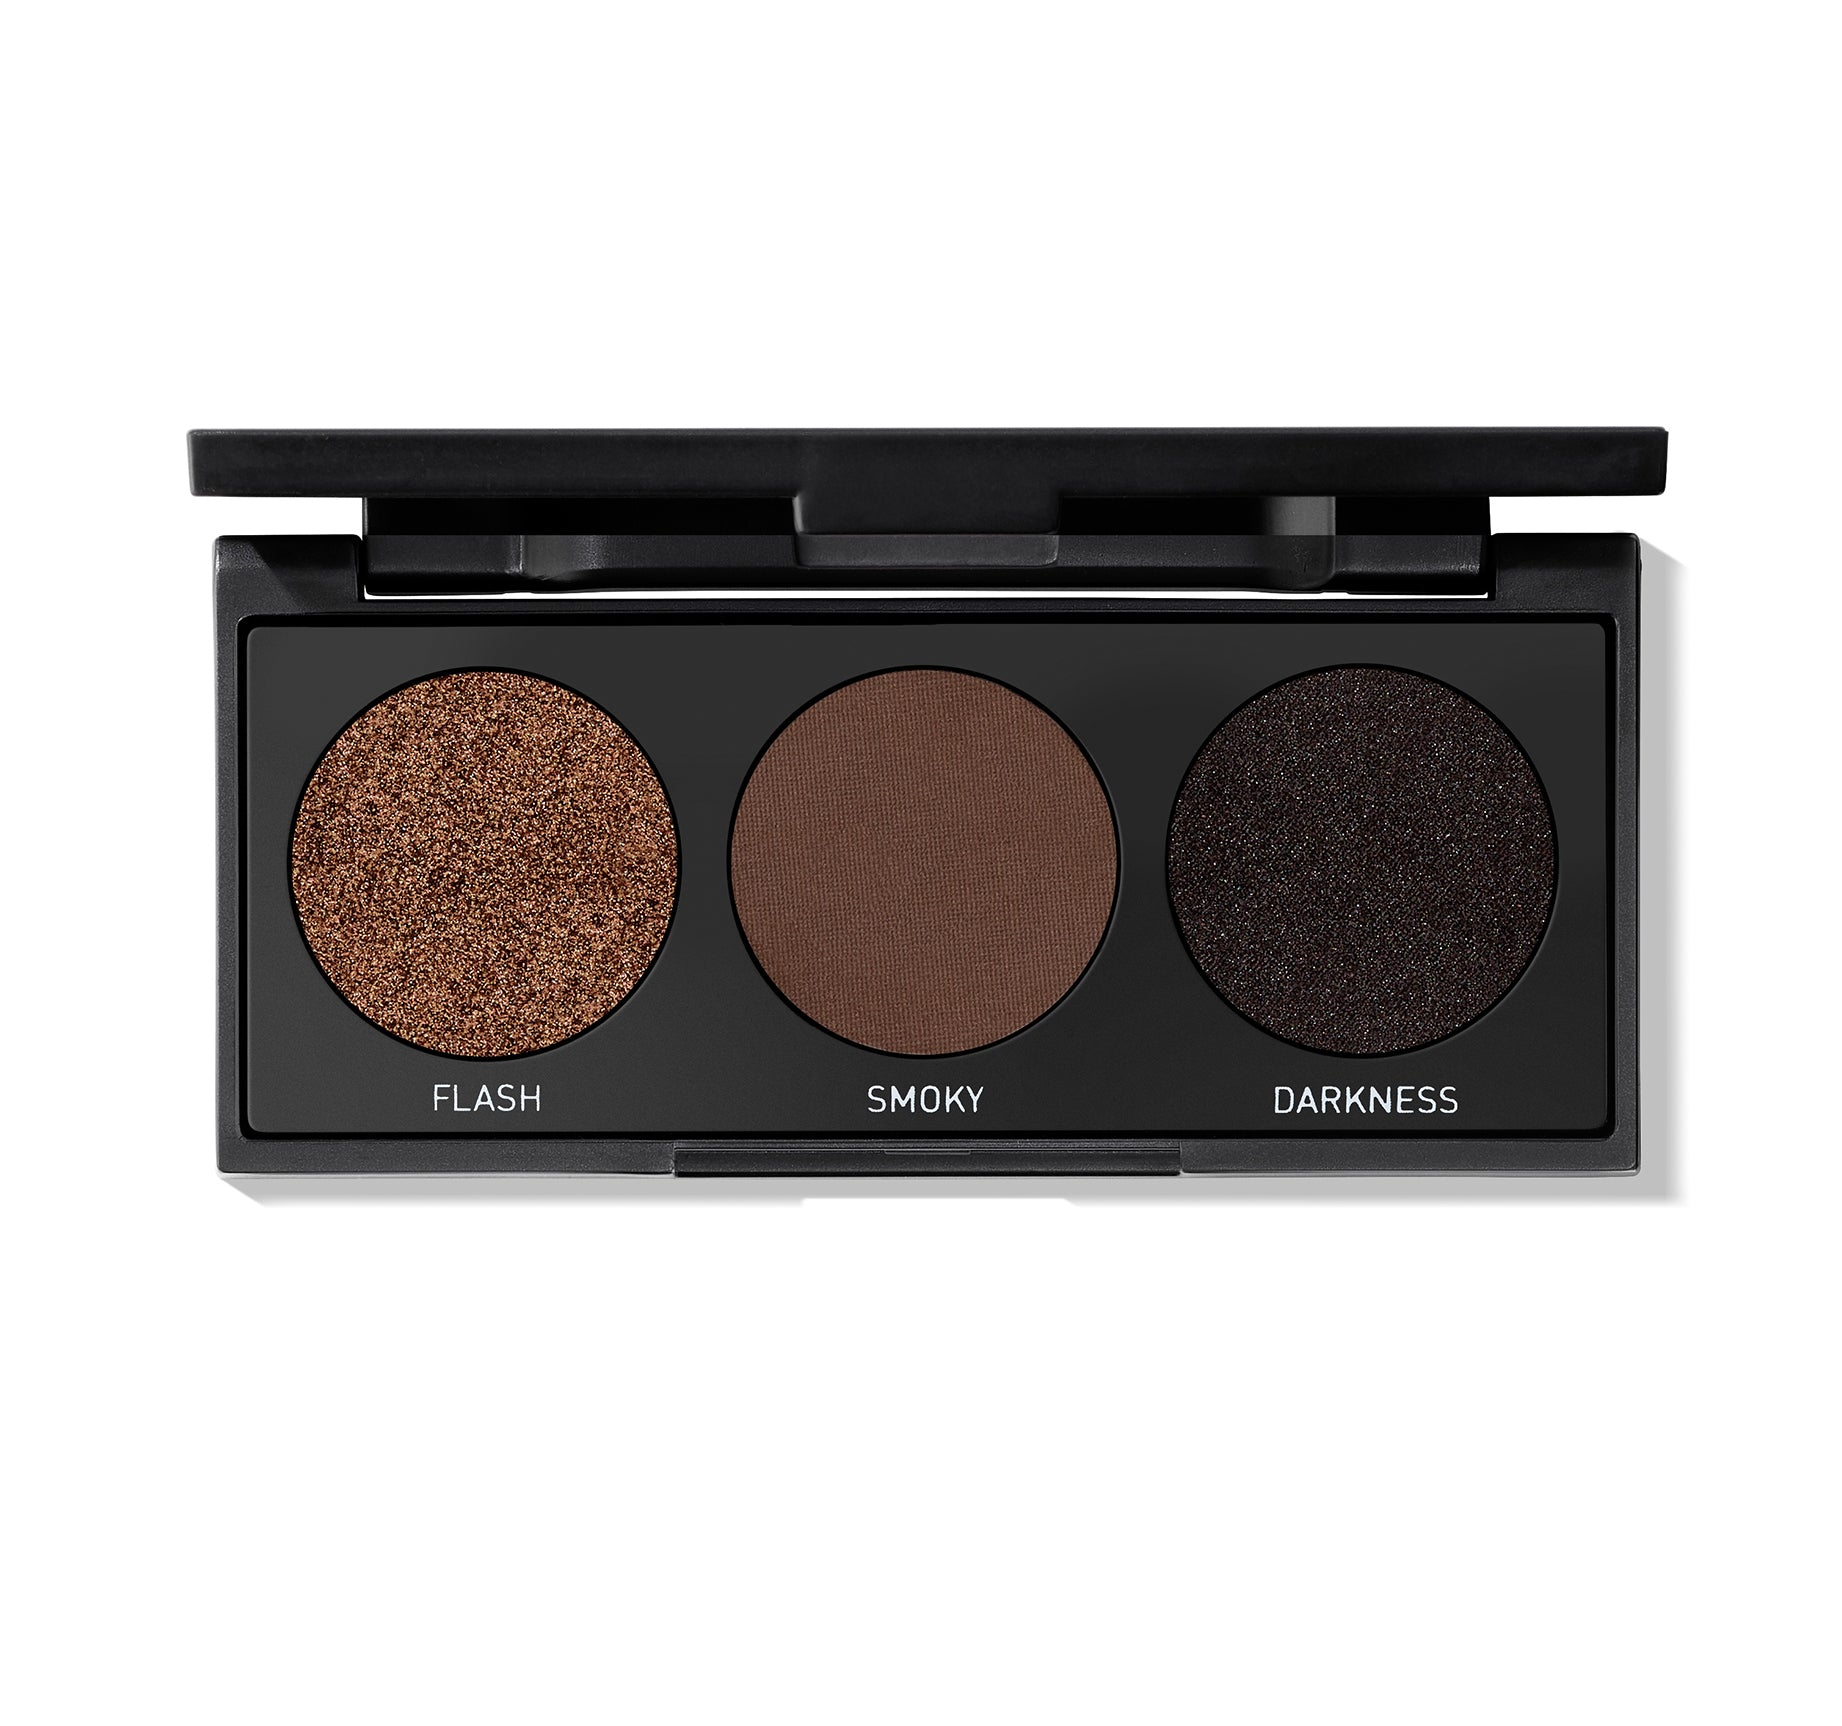 3A DEEP SMOKY EYESHADOW PALETTE